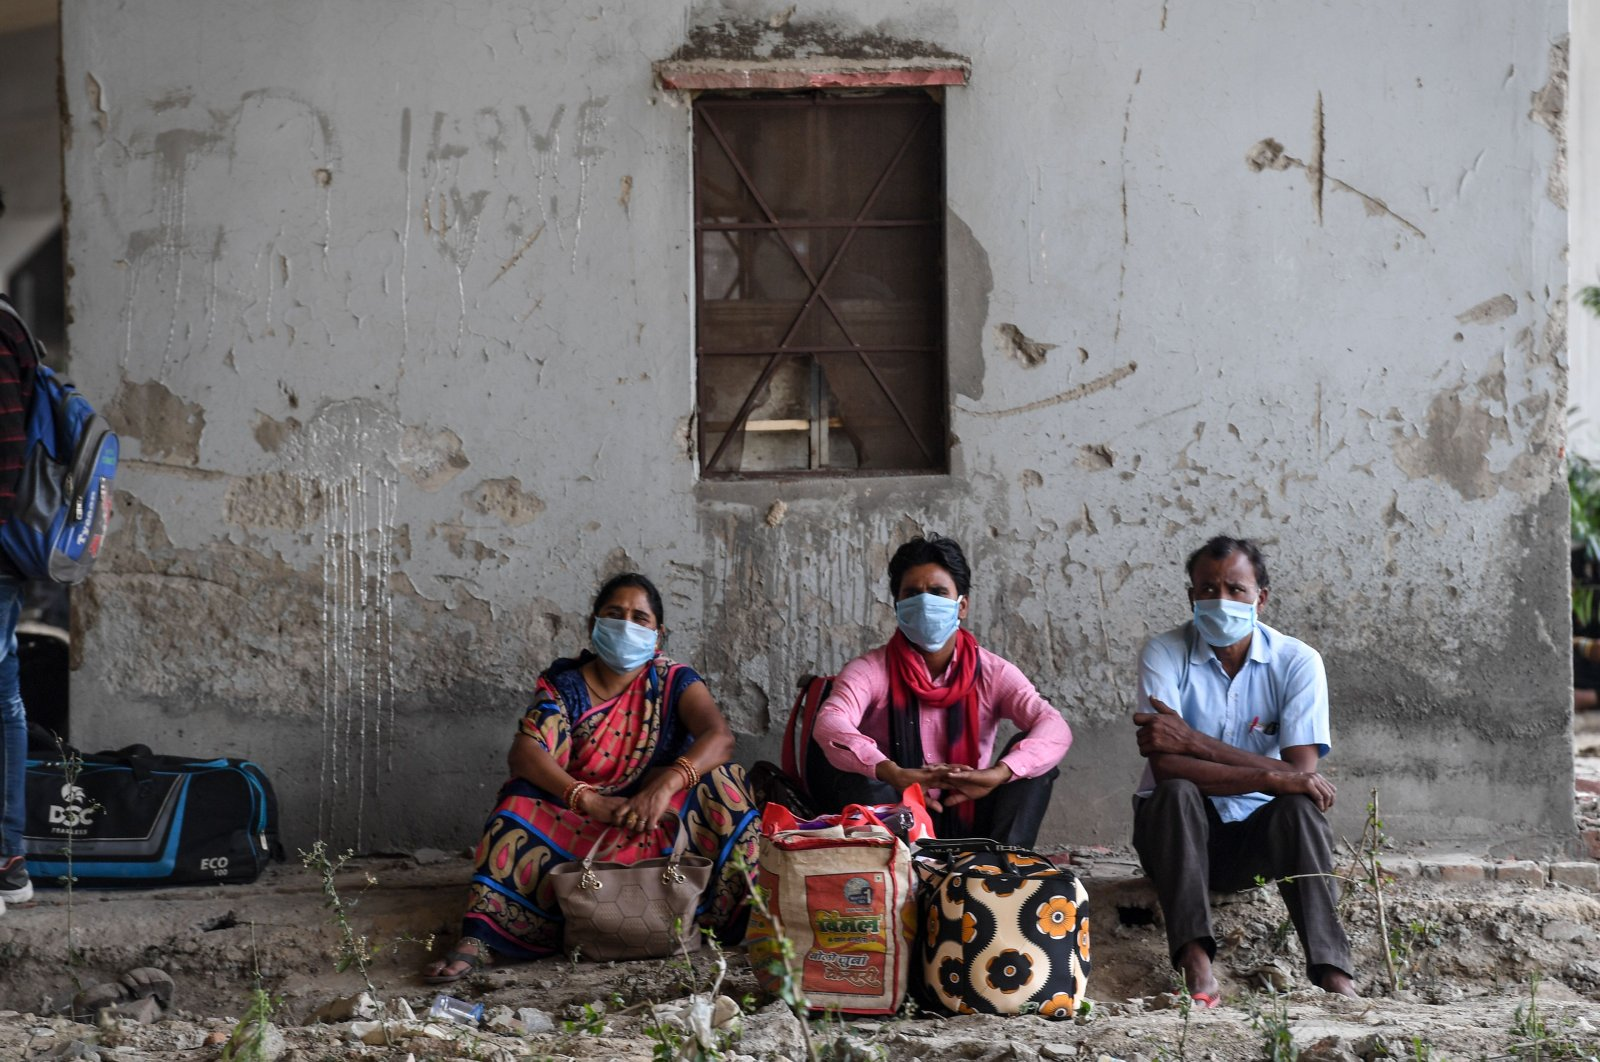 Migrant workers and families wait for transport to go to their hometowns in Uttar Pradesh and Bihar states after police stopped them from crossing the Delhi-Uttar Pradesh states border on foot as the government eased a nationwide lockdown as a preventive measure against the COVID-19 coronavirus, New Delhi, May 15, 2020. (AFP Photo)